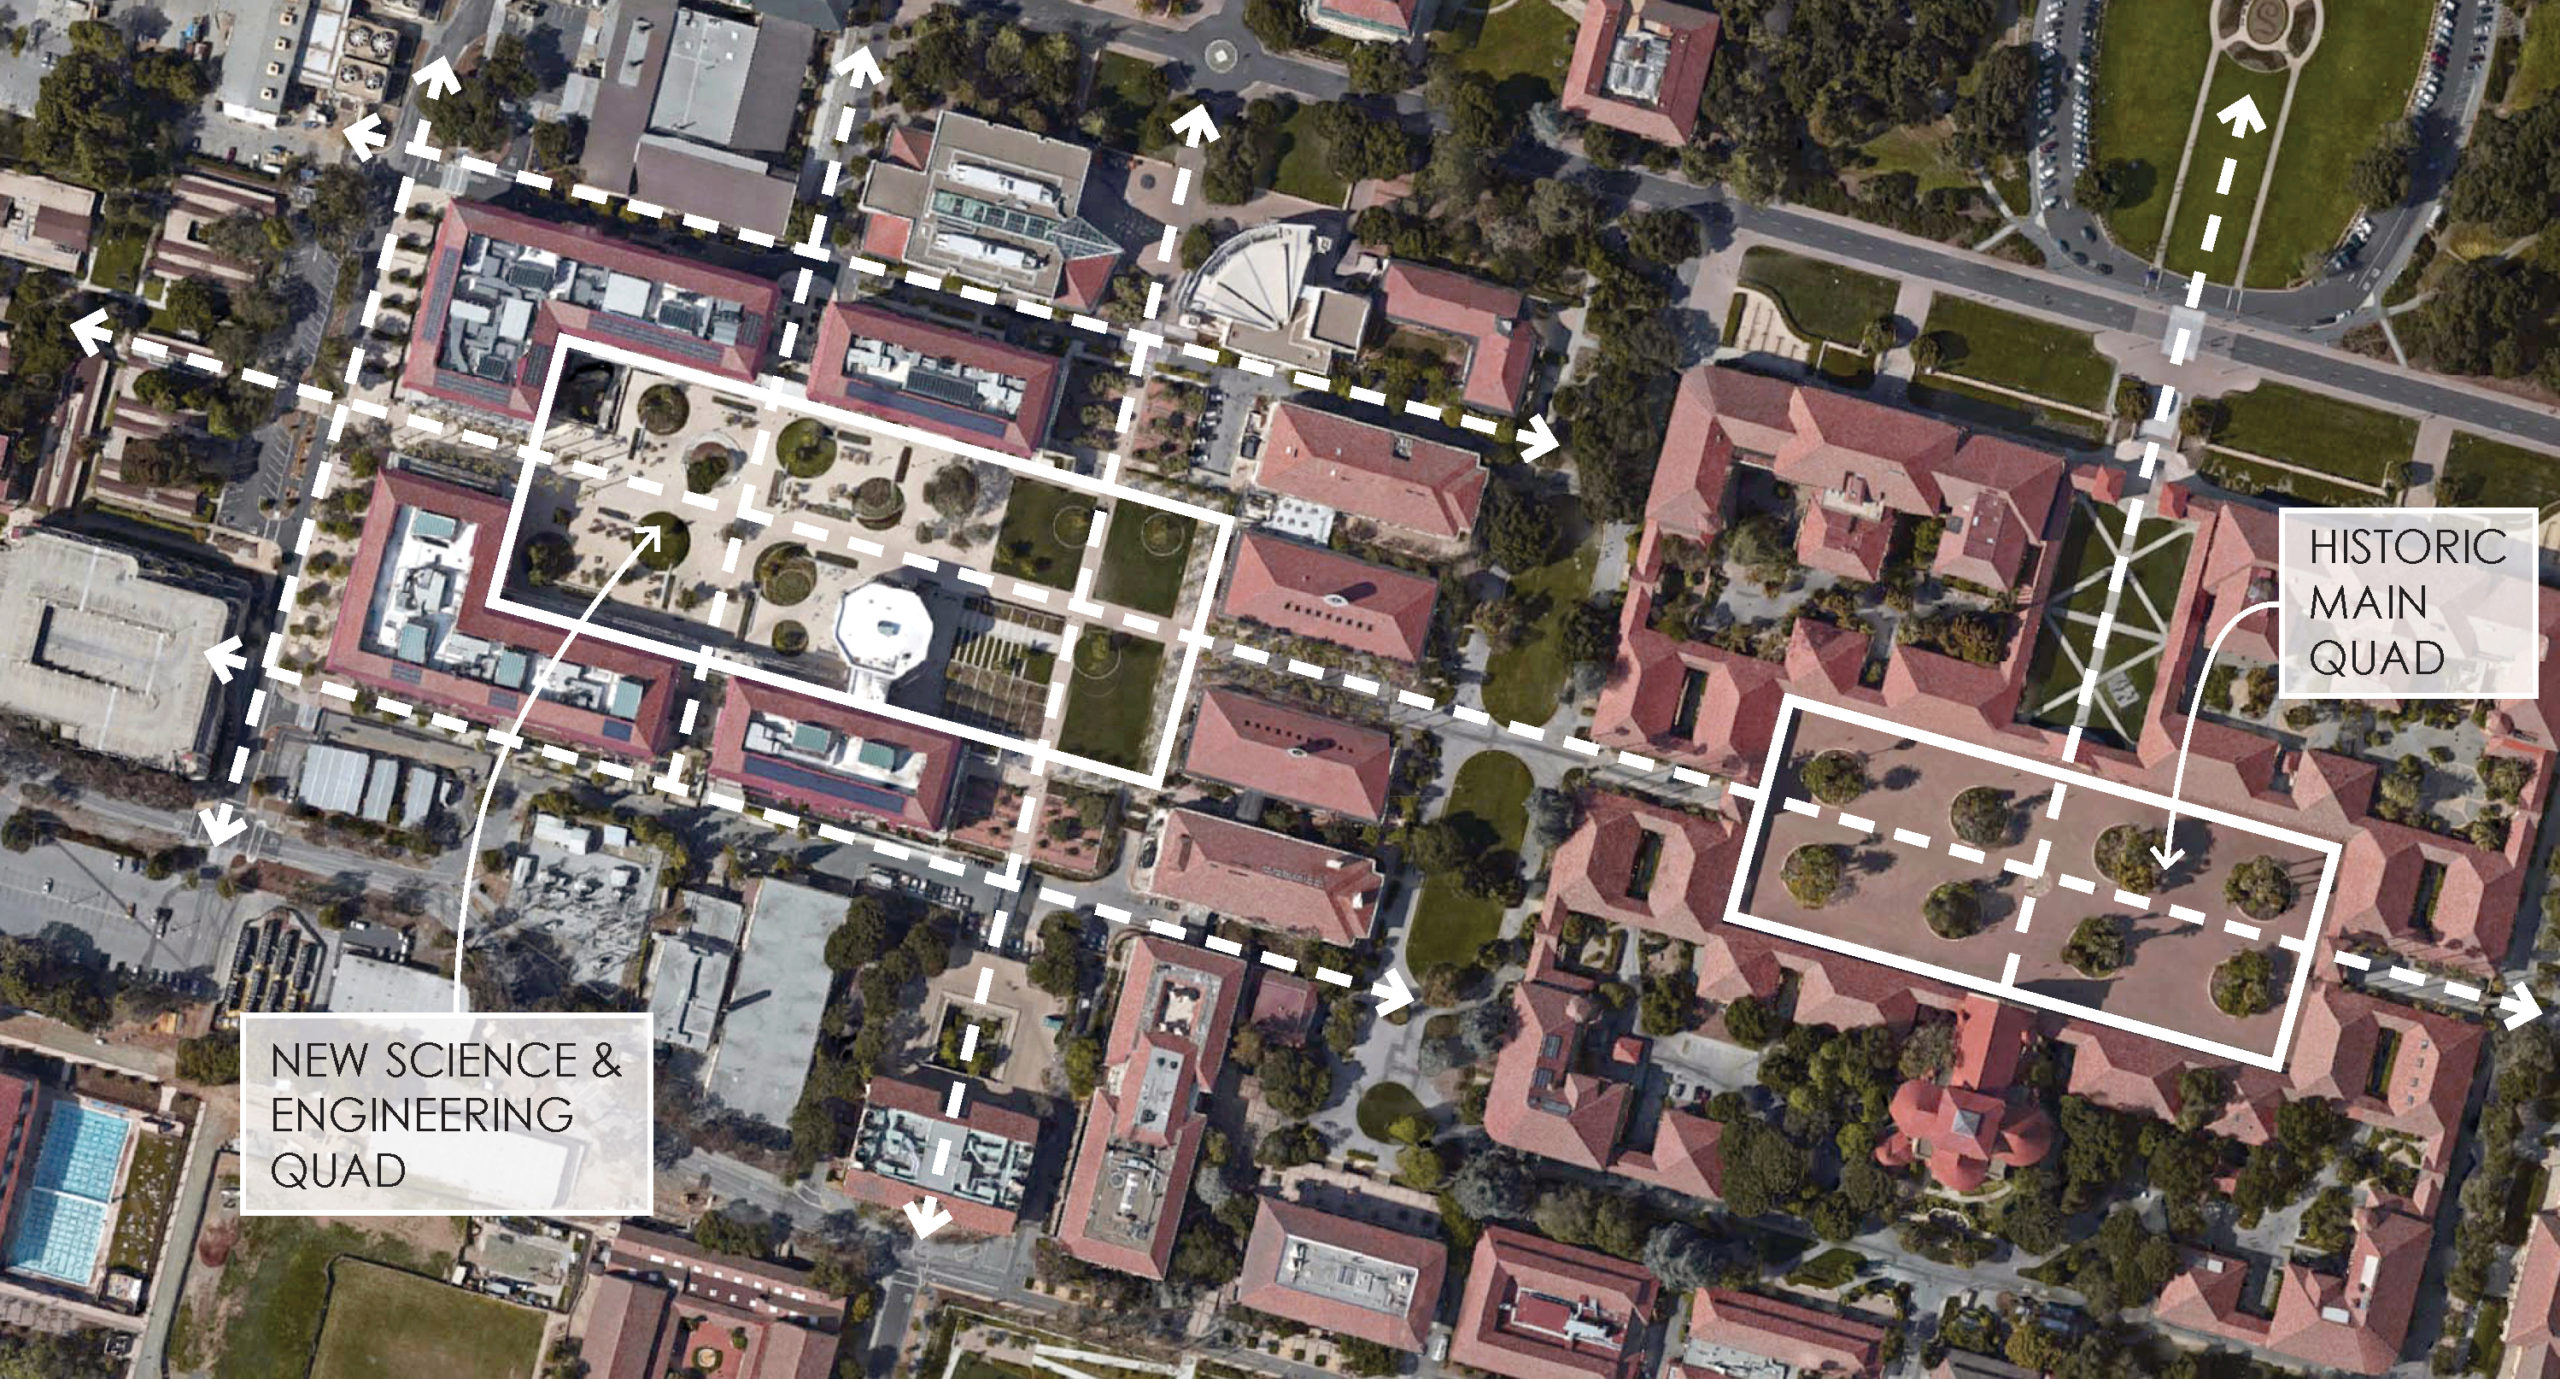 Science and Engineering Quad Master Plan and Design Guidelines at Stanford University / image 3